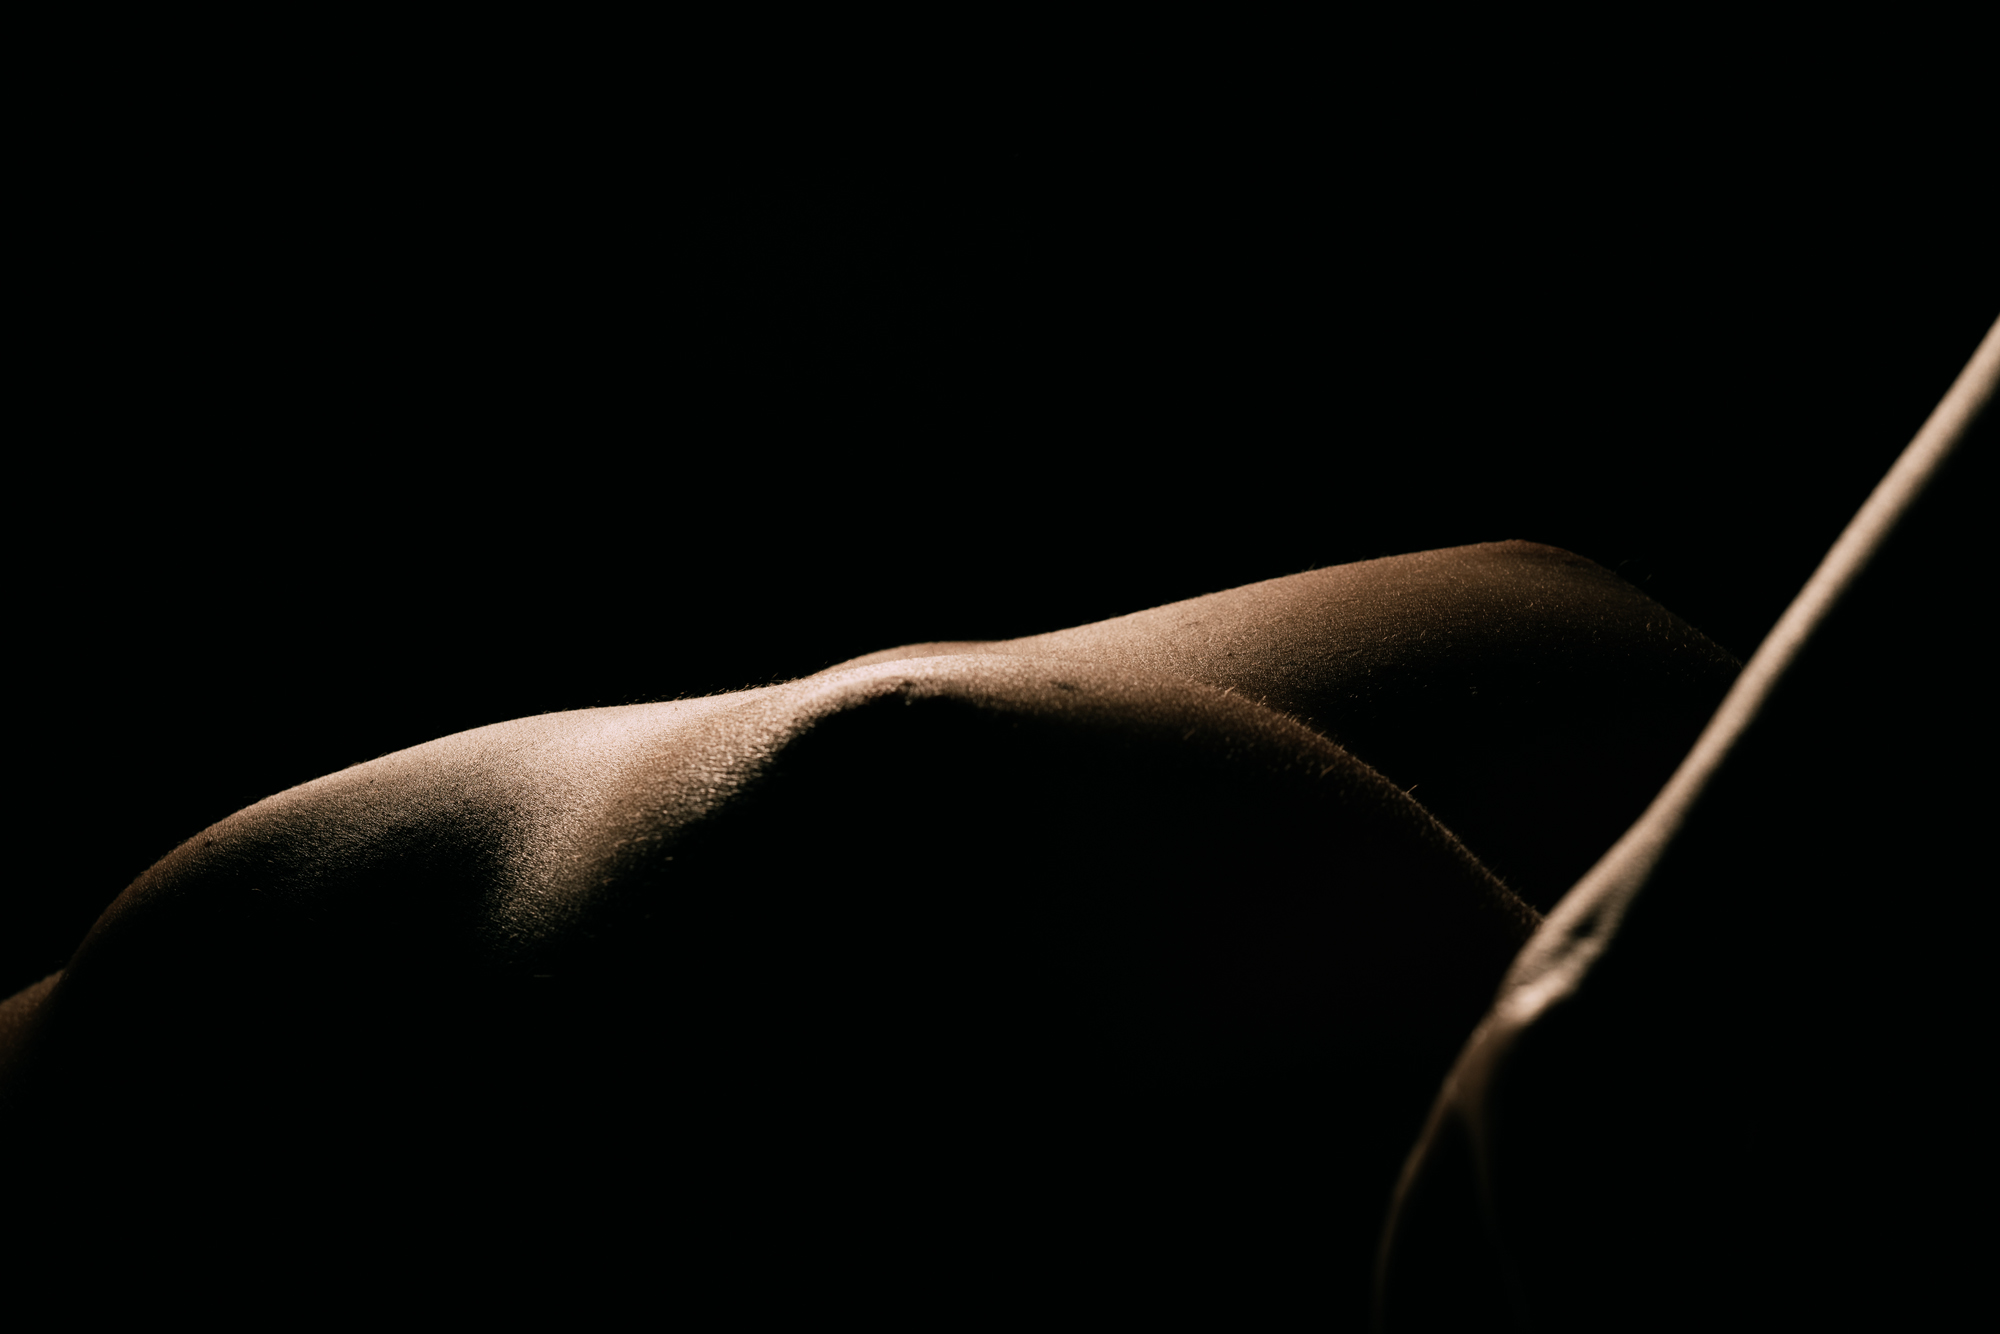 Bodyscapes - Susy_0053.jpg